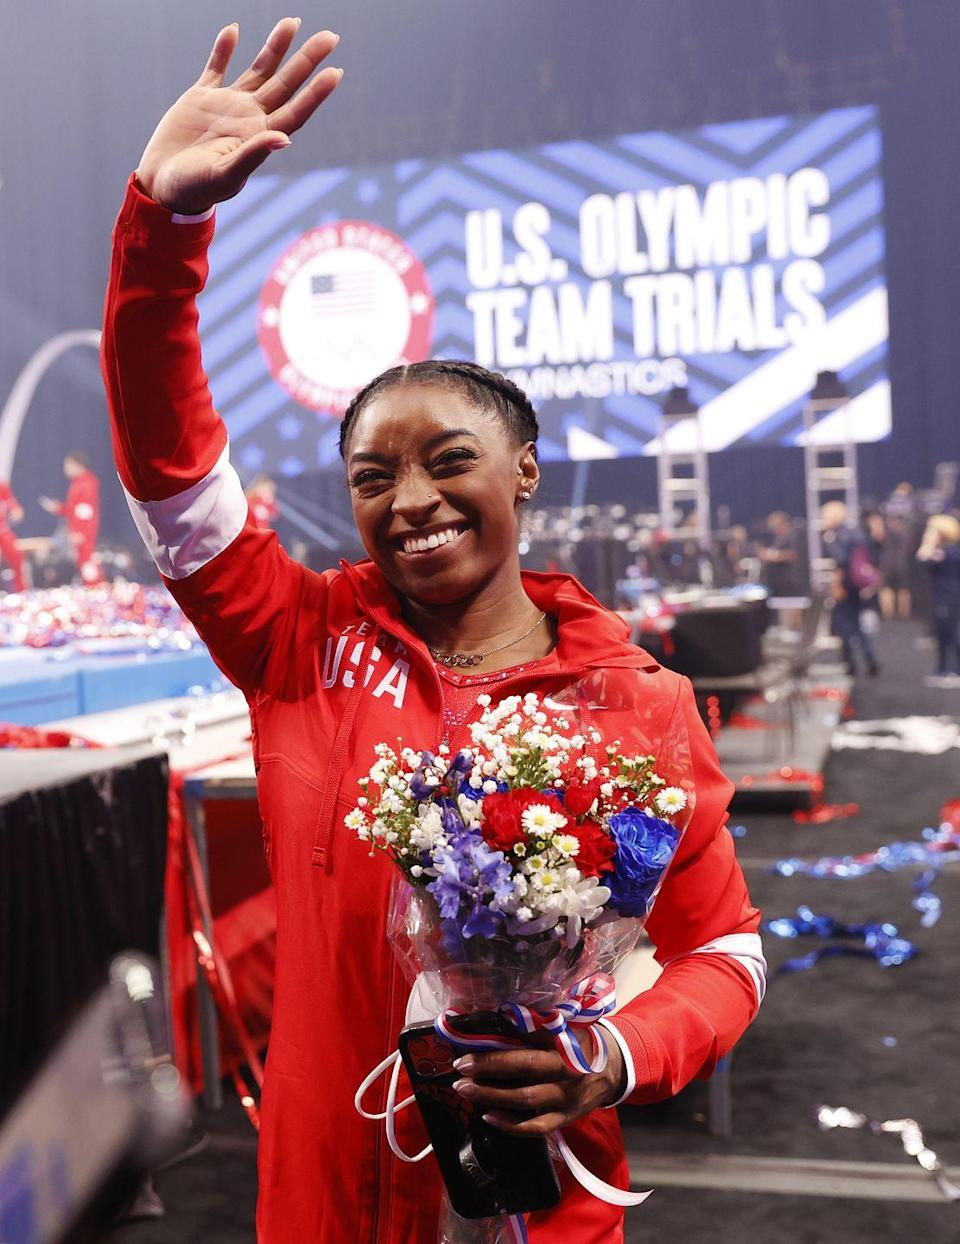 """<p><strong>Sport: </strong>Gymnastics</p><p>As the official GOAT, <a href=""""https://www.oprahdaily.com/entertainment/a36982931/team-usa-gymnastics-team-tokyo-olympics/"""" rel=""""nofollow noopener"""" target=""""_blank"""" data-ylk=""""slk:Biles will lead Team USA"""" class=""""link rapid-noclick-resp"""">Biles will lead Team USA</a> at her second Olympics in Tokyo. During her megawatt career, she's won seven all-around national titles in a row, five Olympic medals, 25 world medals, and has four signature gymnastics moves named after her.<br></p>"""